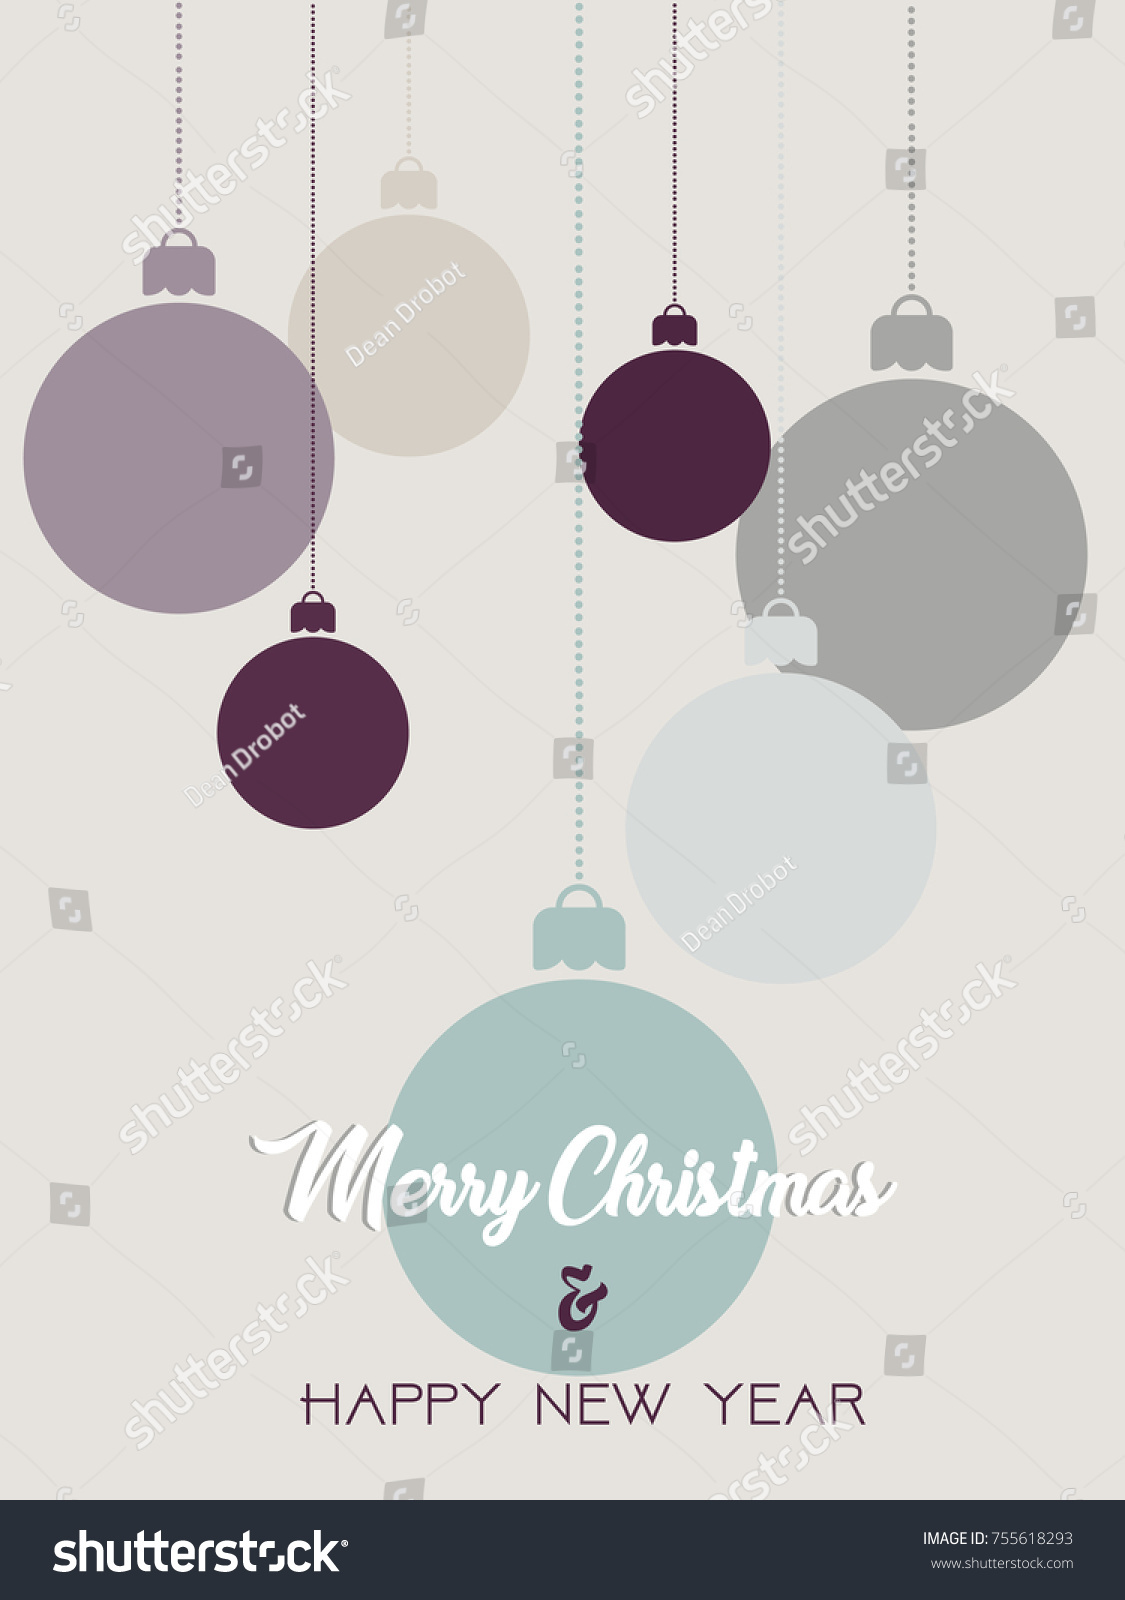 Merry Christmas Happy New Year Poster Stock Vector Royalty Free